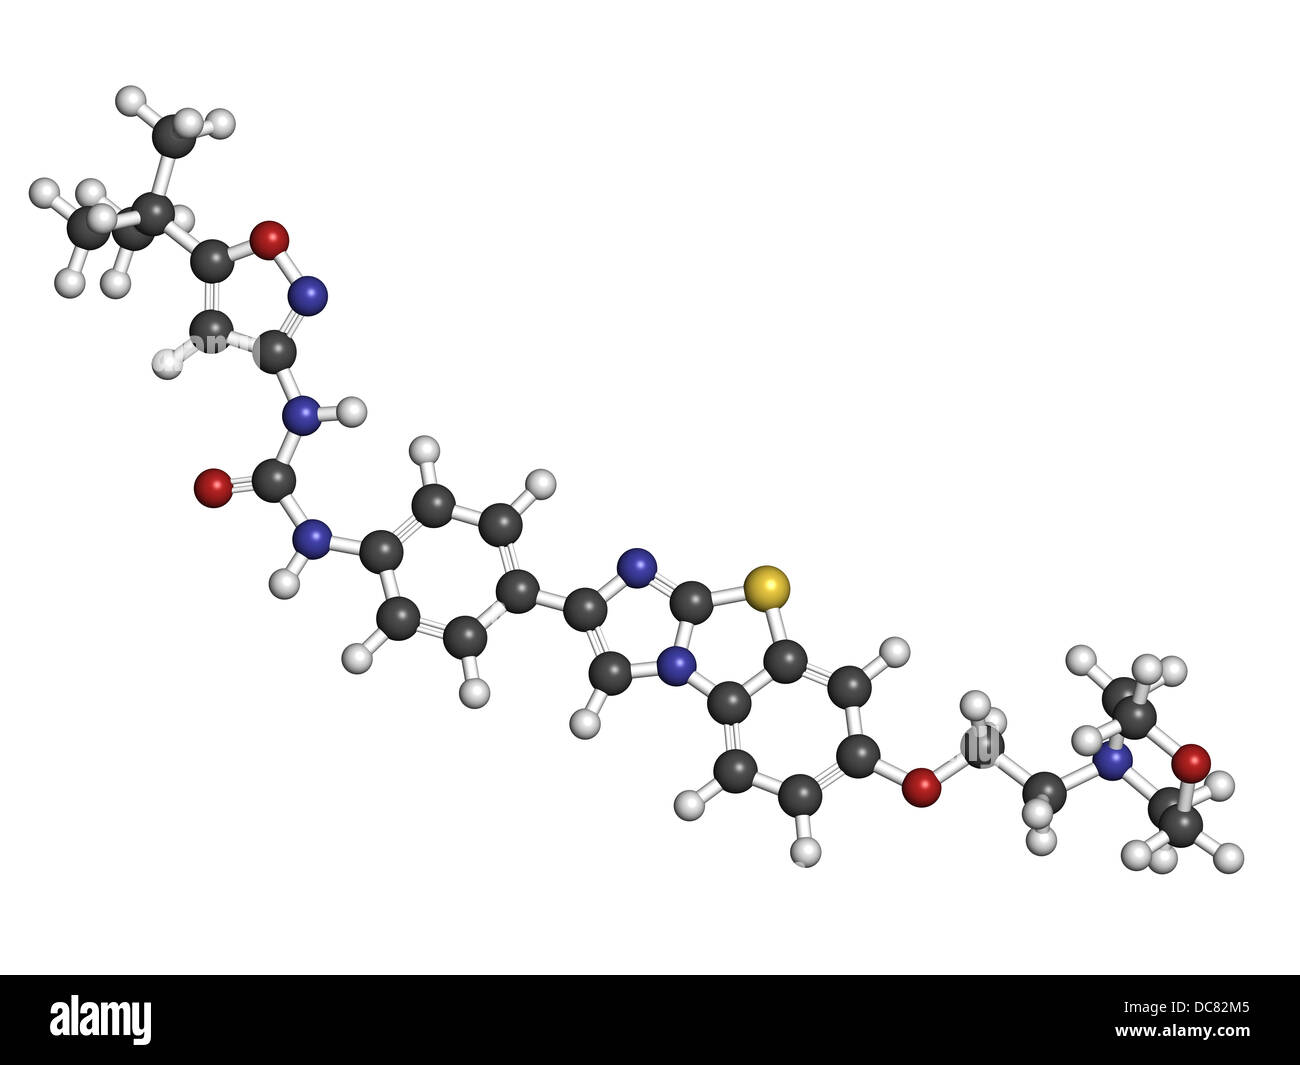 Quizartinib investigational acute myeloid leukemia (AML) drug, chemical structure Atoms are represented as spheres. - Stock Image